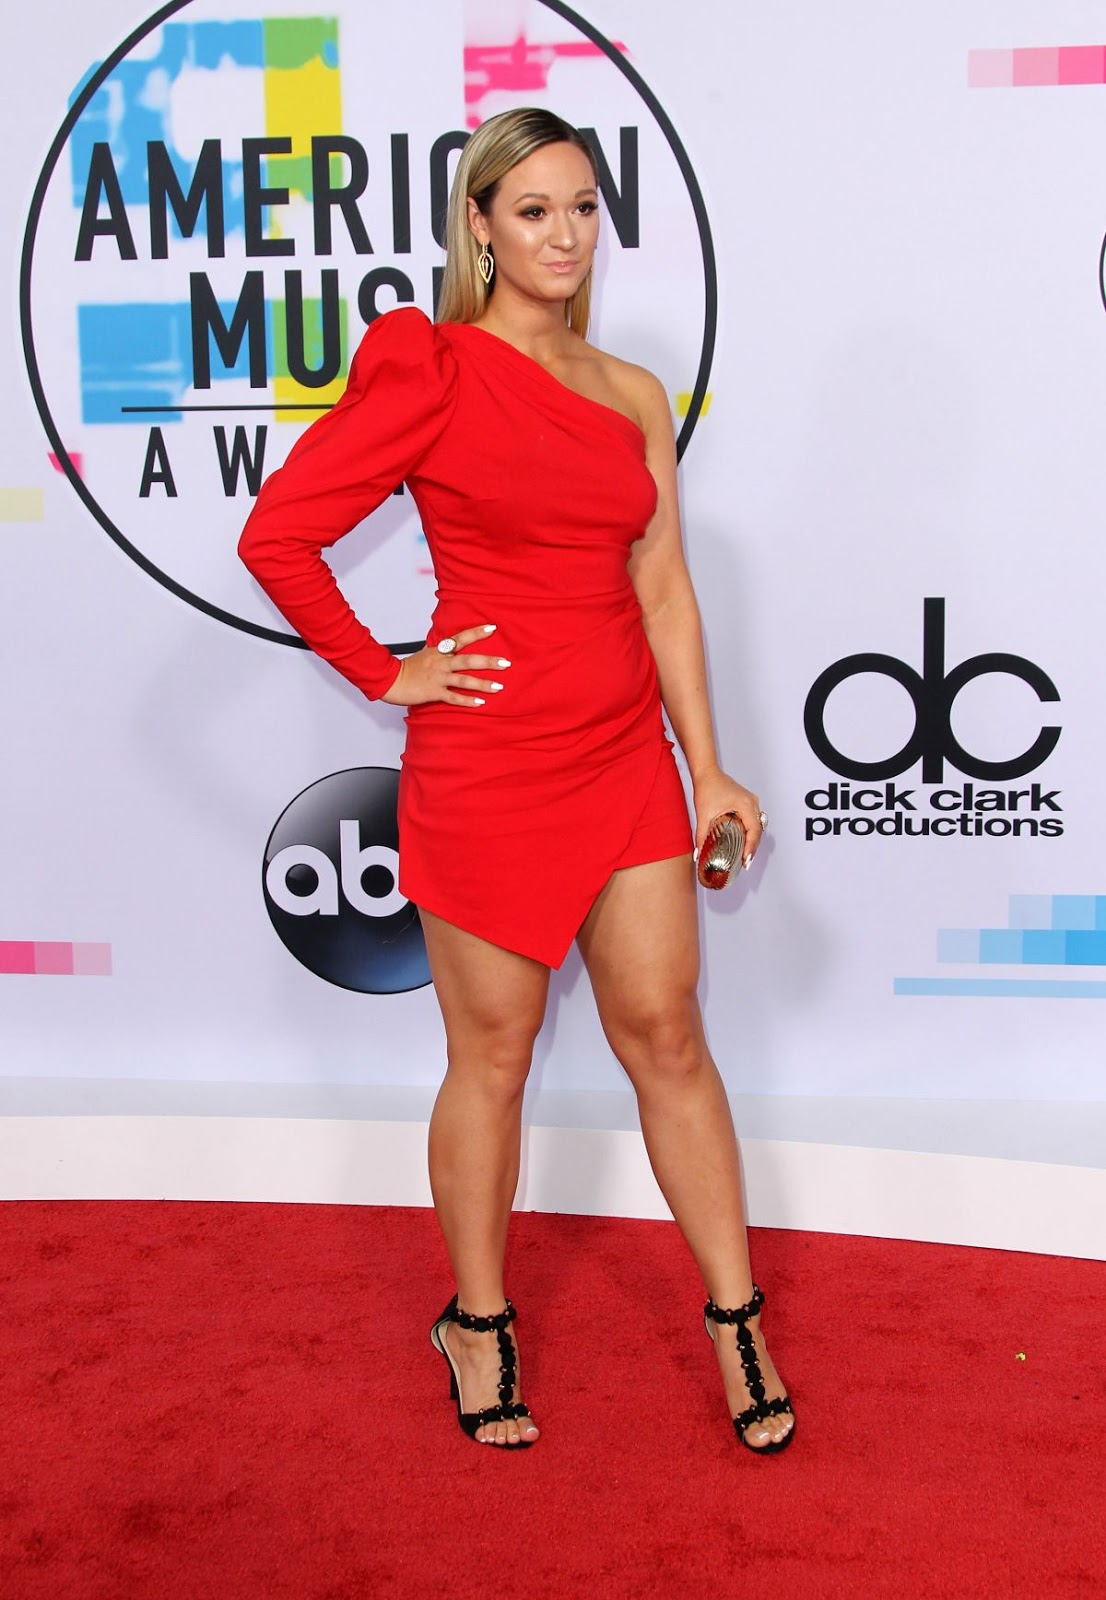 Photos of Alisha Marie at American Music Awards 2017 at Microsoft Theater in Los Angeles